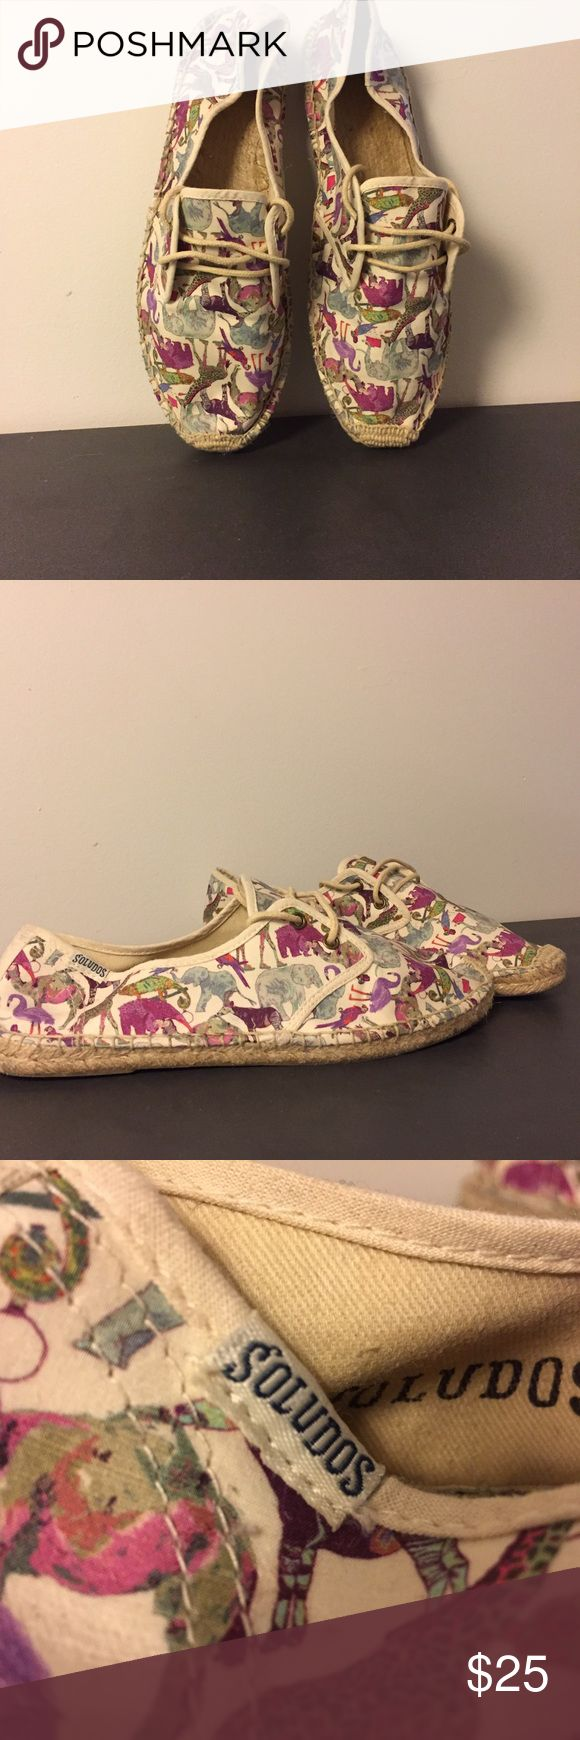 Soludos espadrilles - cute safari animal print! Worn two times. Animal print is adorable, featuring giraffes and other safari animals. Limited edition print Soludos Shoes Espadrilles